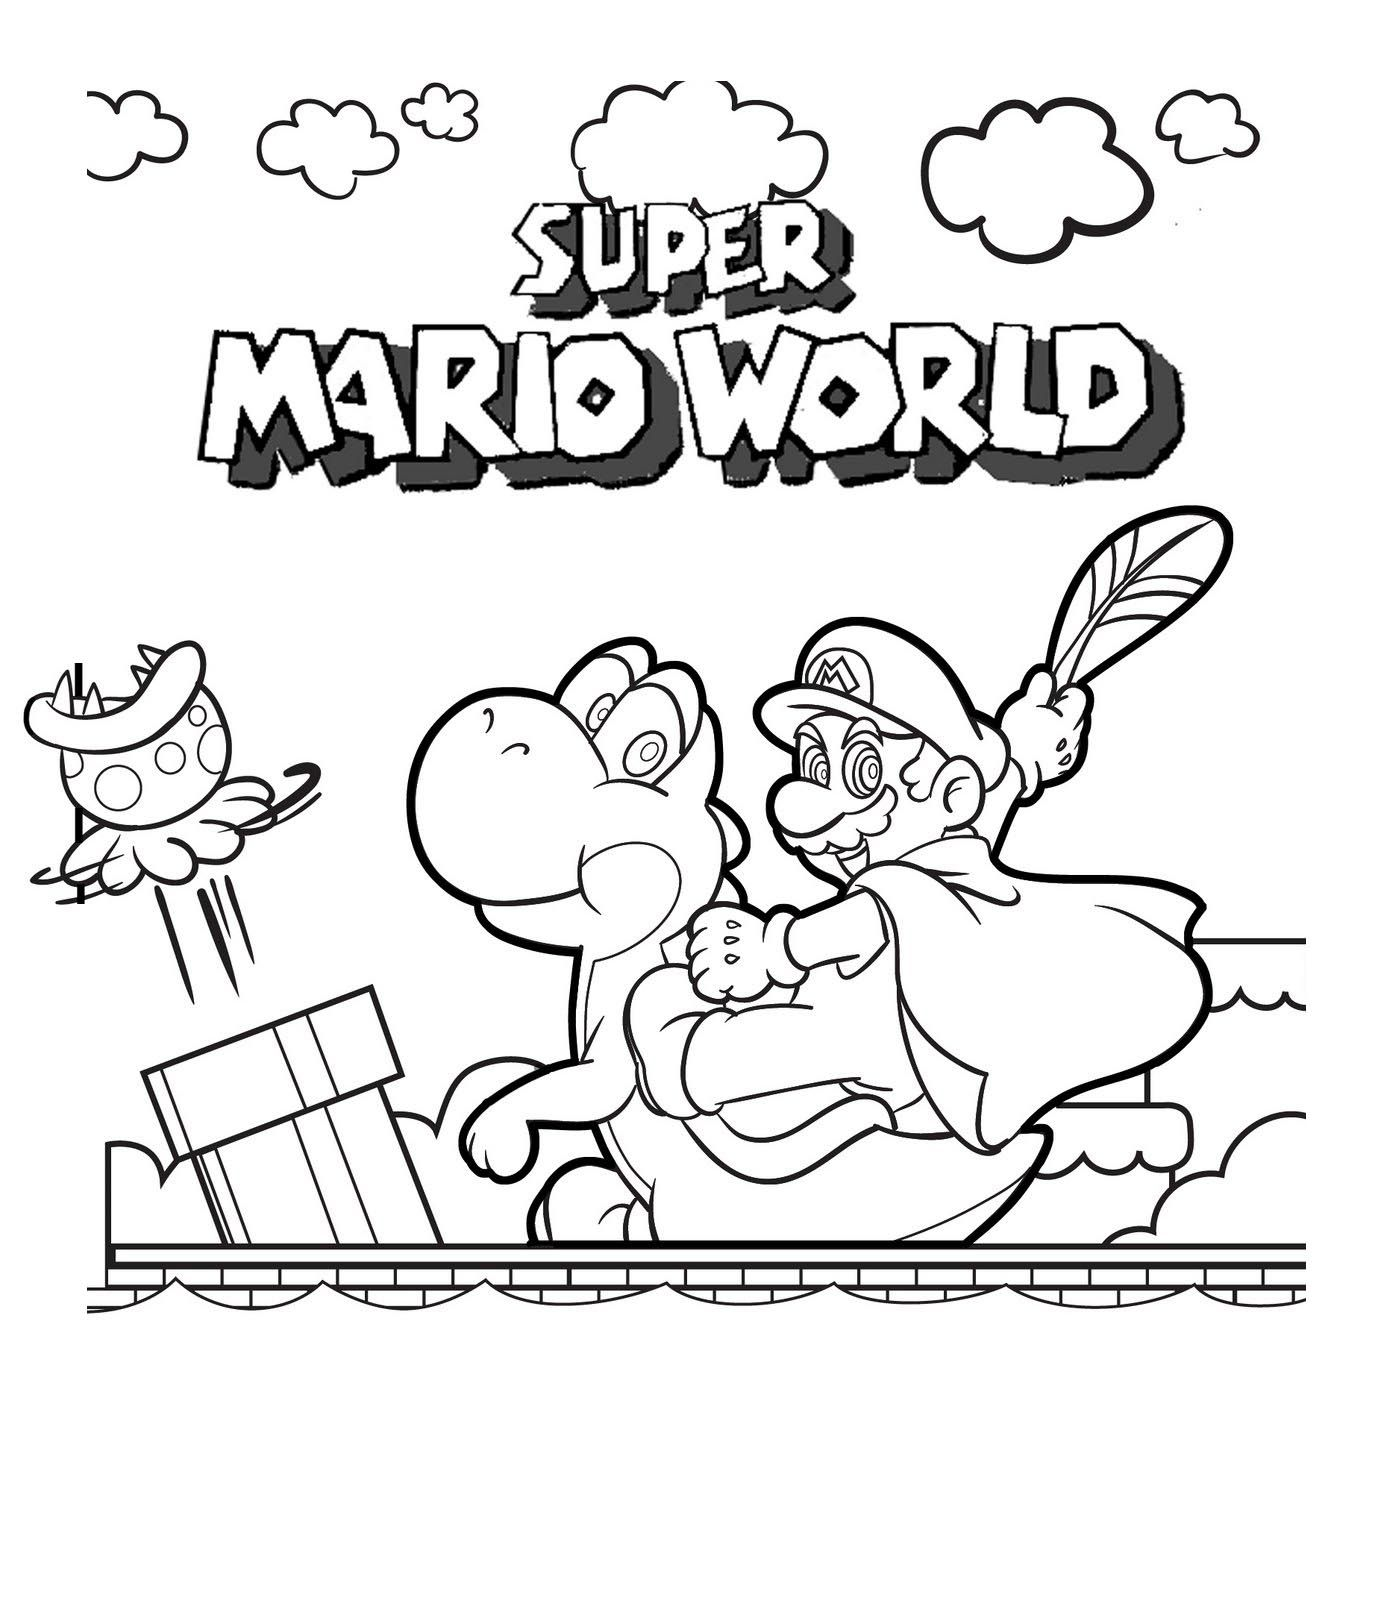 Nintendo Land Coloring Pages - Coloring Home